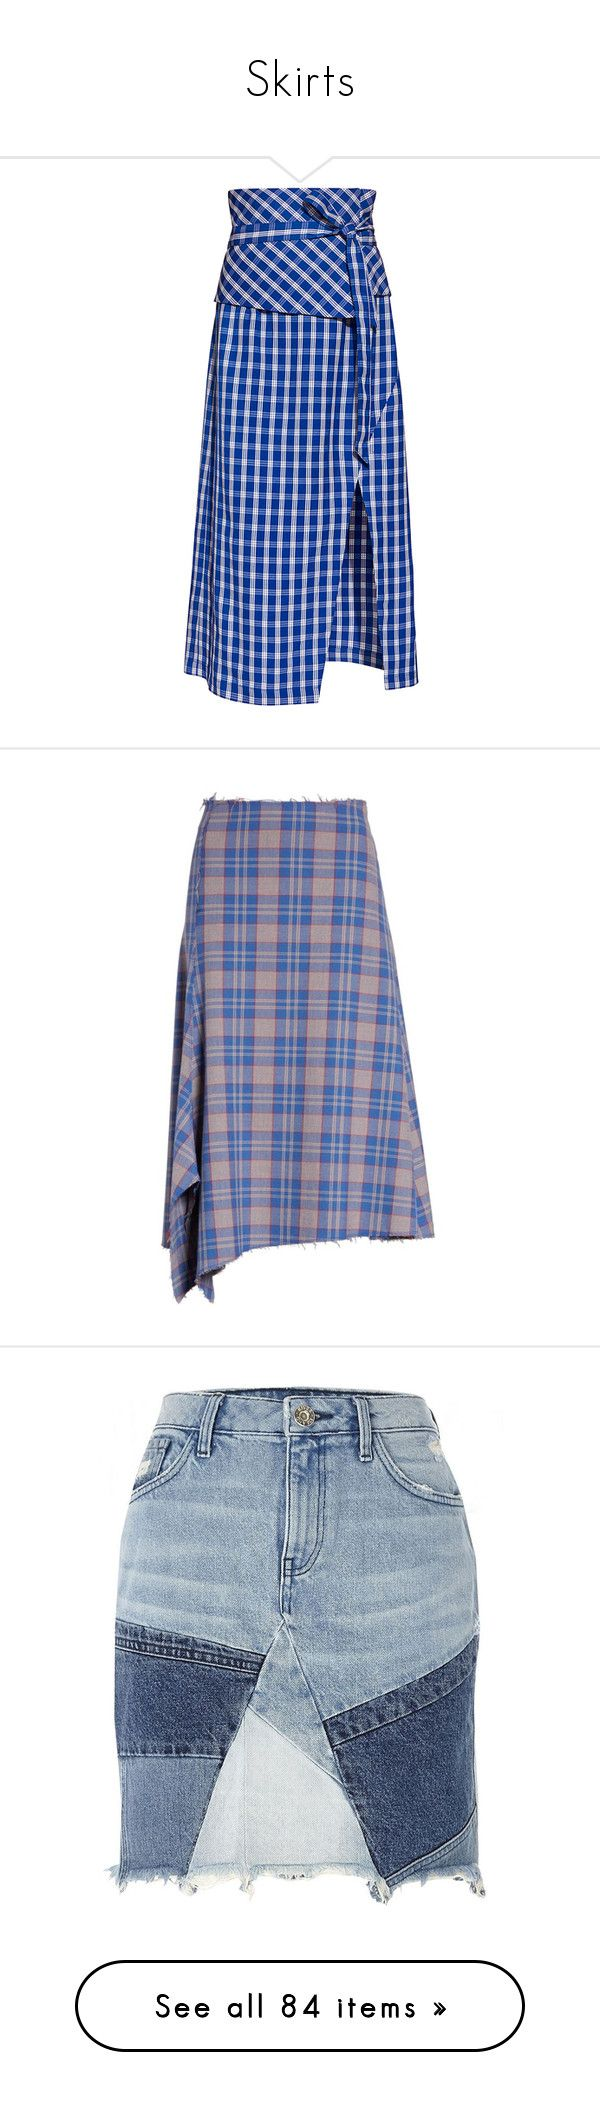 """Skirts"" by explorer-14639182668 ❤ liked on Polyvore featuring skirts, blue skirts, wrap midi skirt, pencil skirts, gingham midi skirt, blue pencil skirt, mid-calf skirt, tartan skirt, blue tartan skirt and asymmetrical skirt"